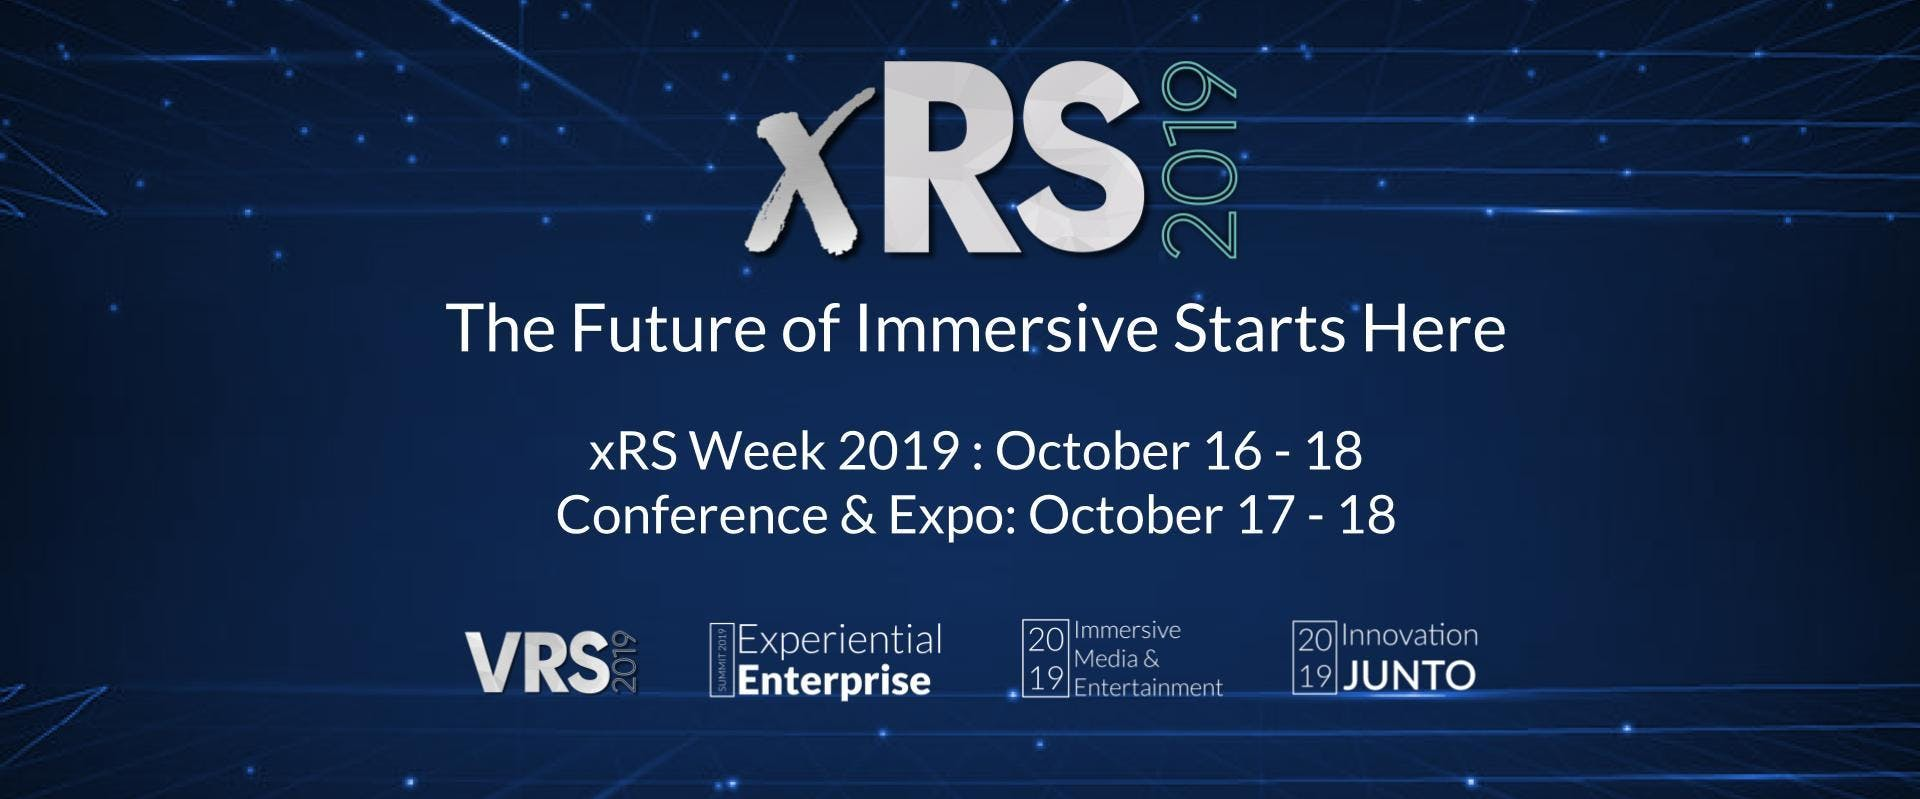 xRS Week 2019 | VR/AR/XR Strategy Conference & Expo at Hotel Kabuki